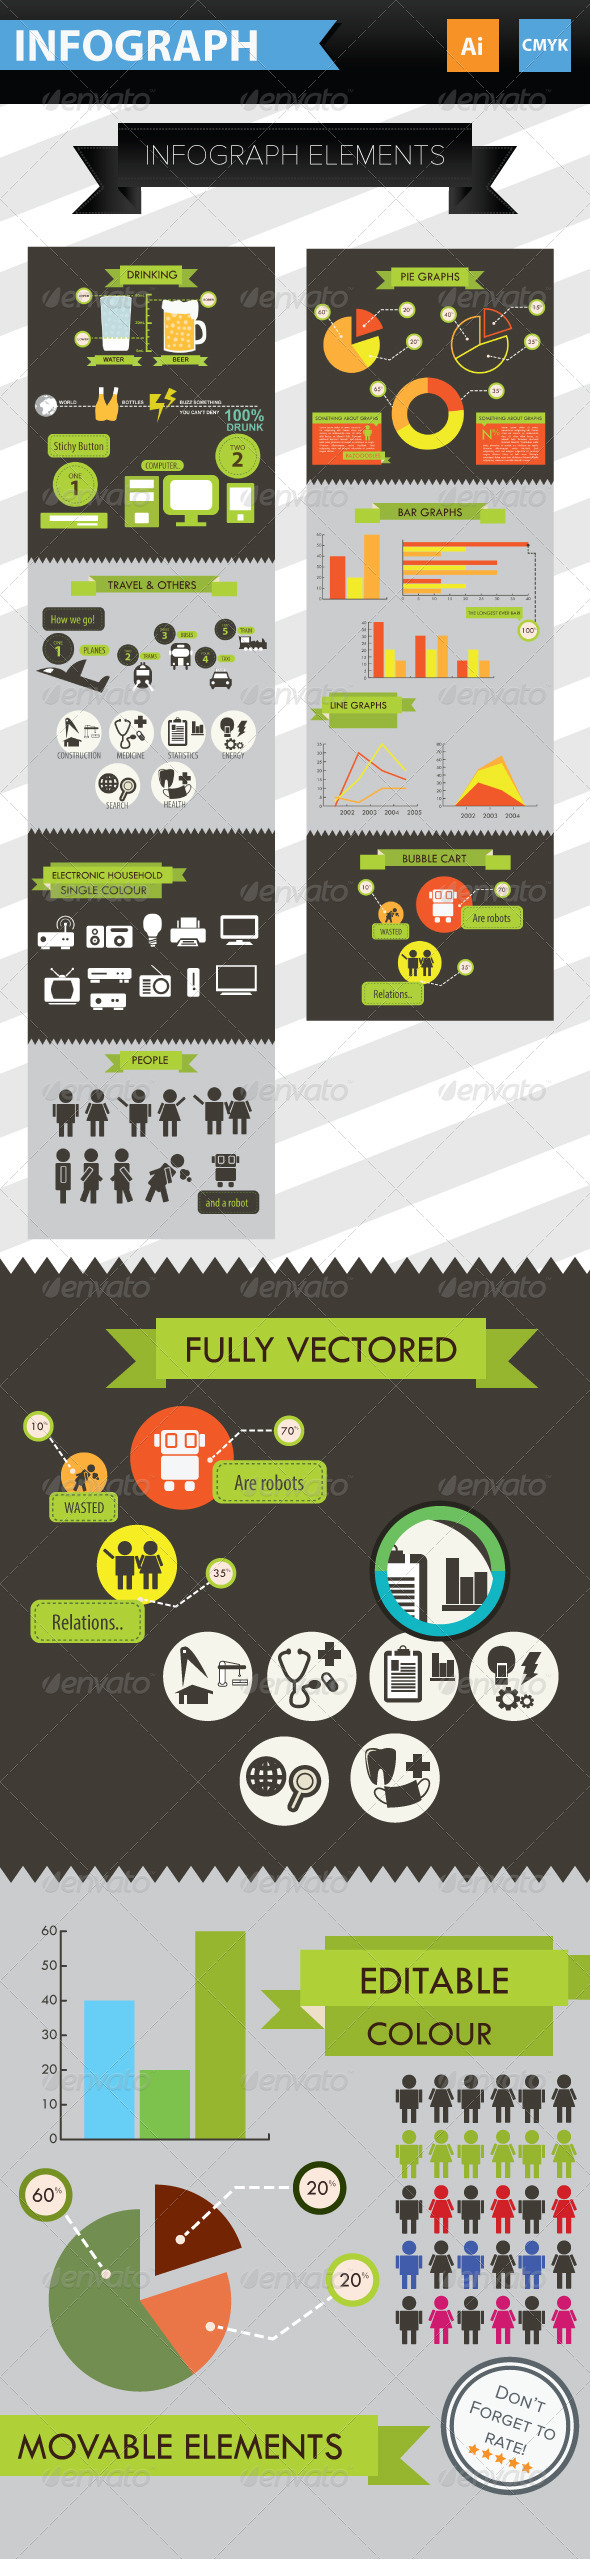 Infographic Elements + Icons - Infographics